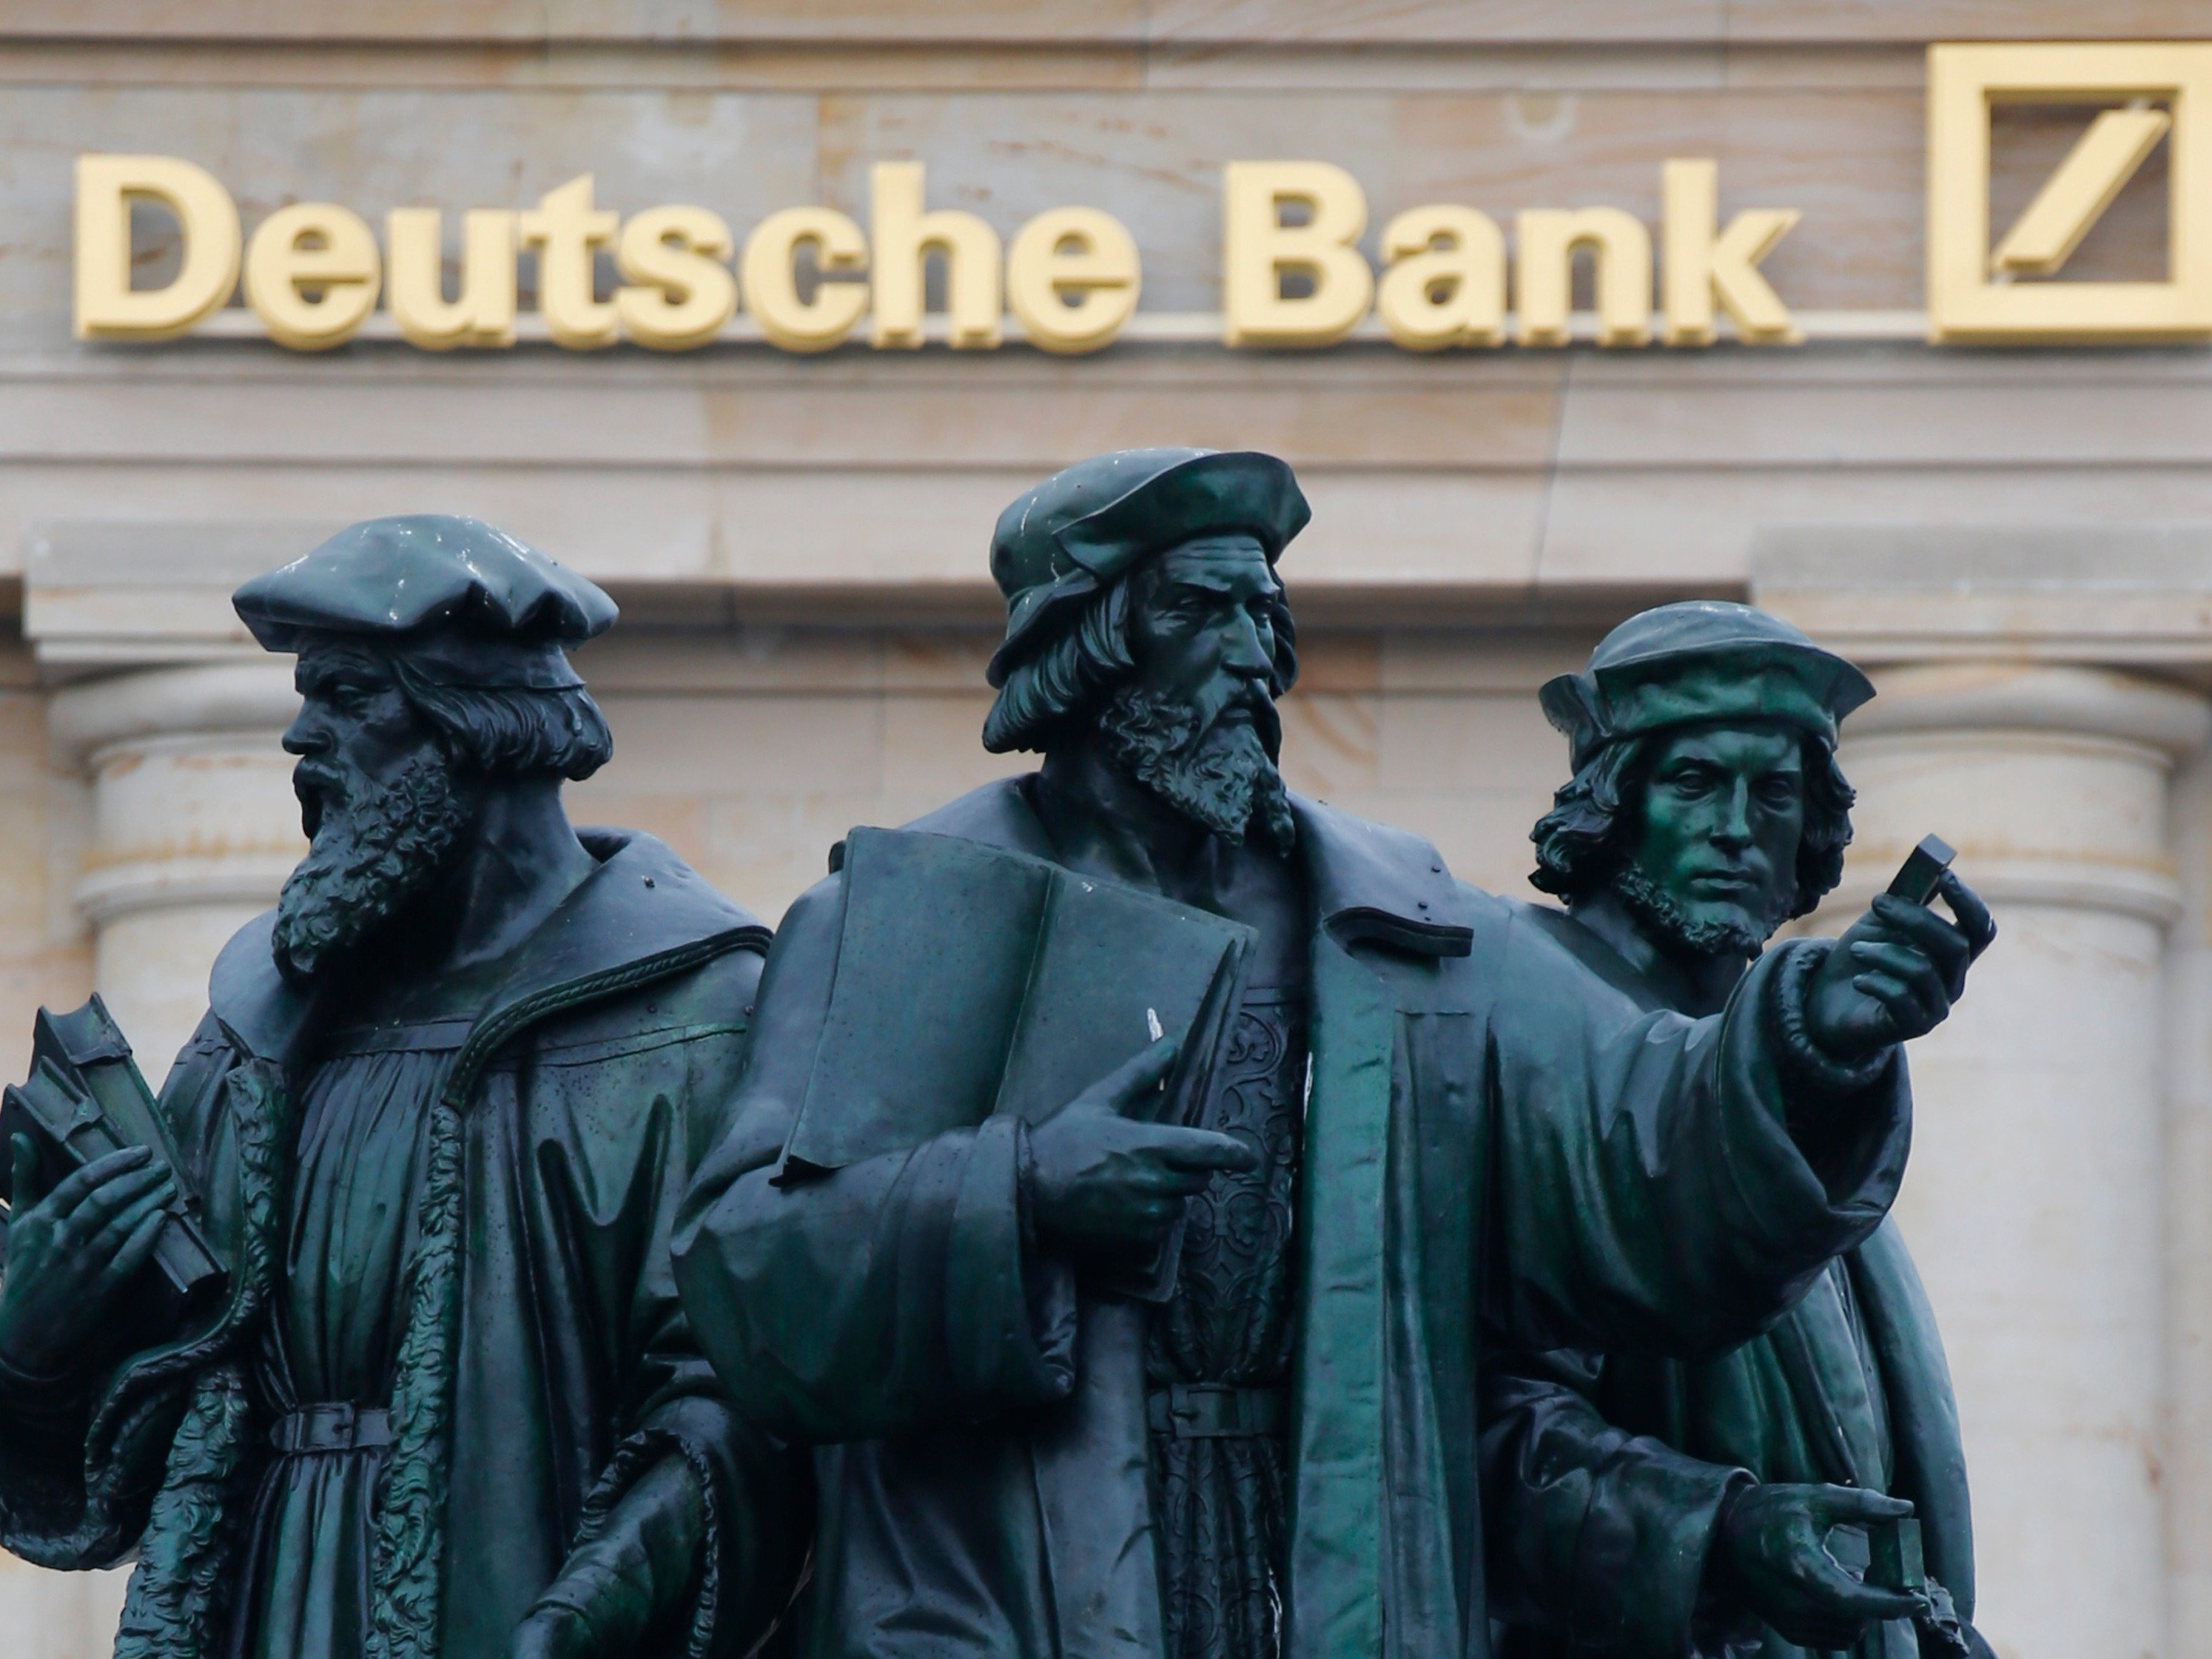 Deutsche Bank: radical restructuring